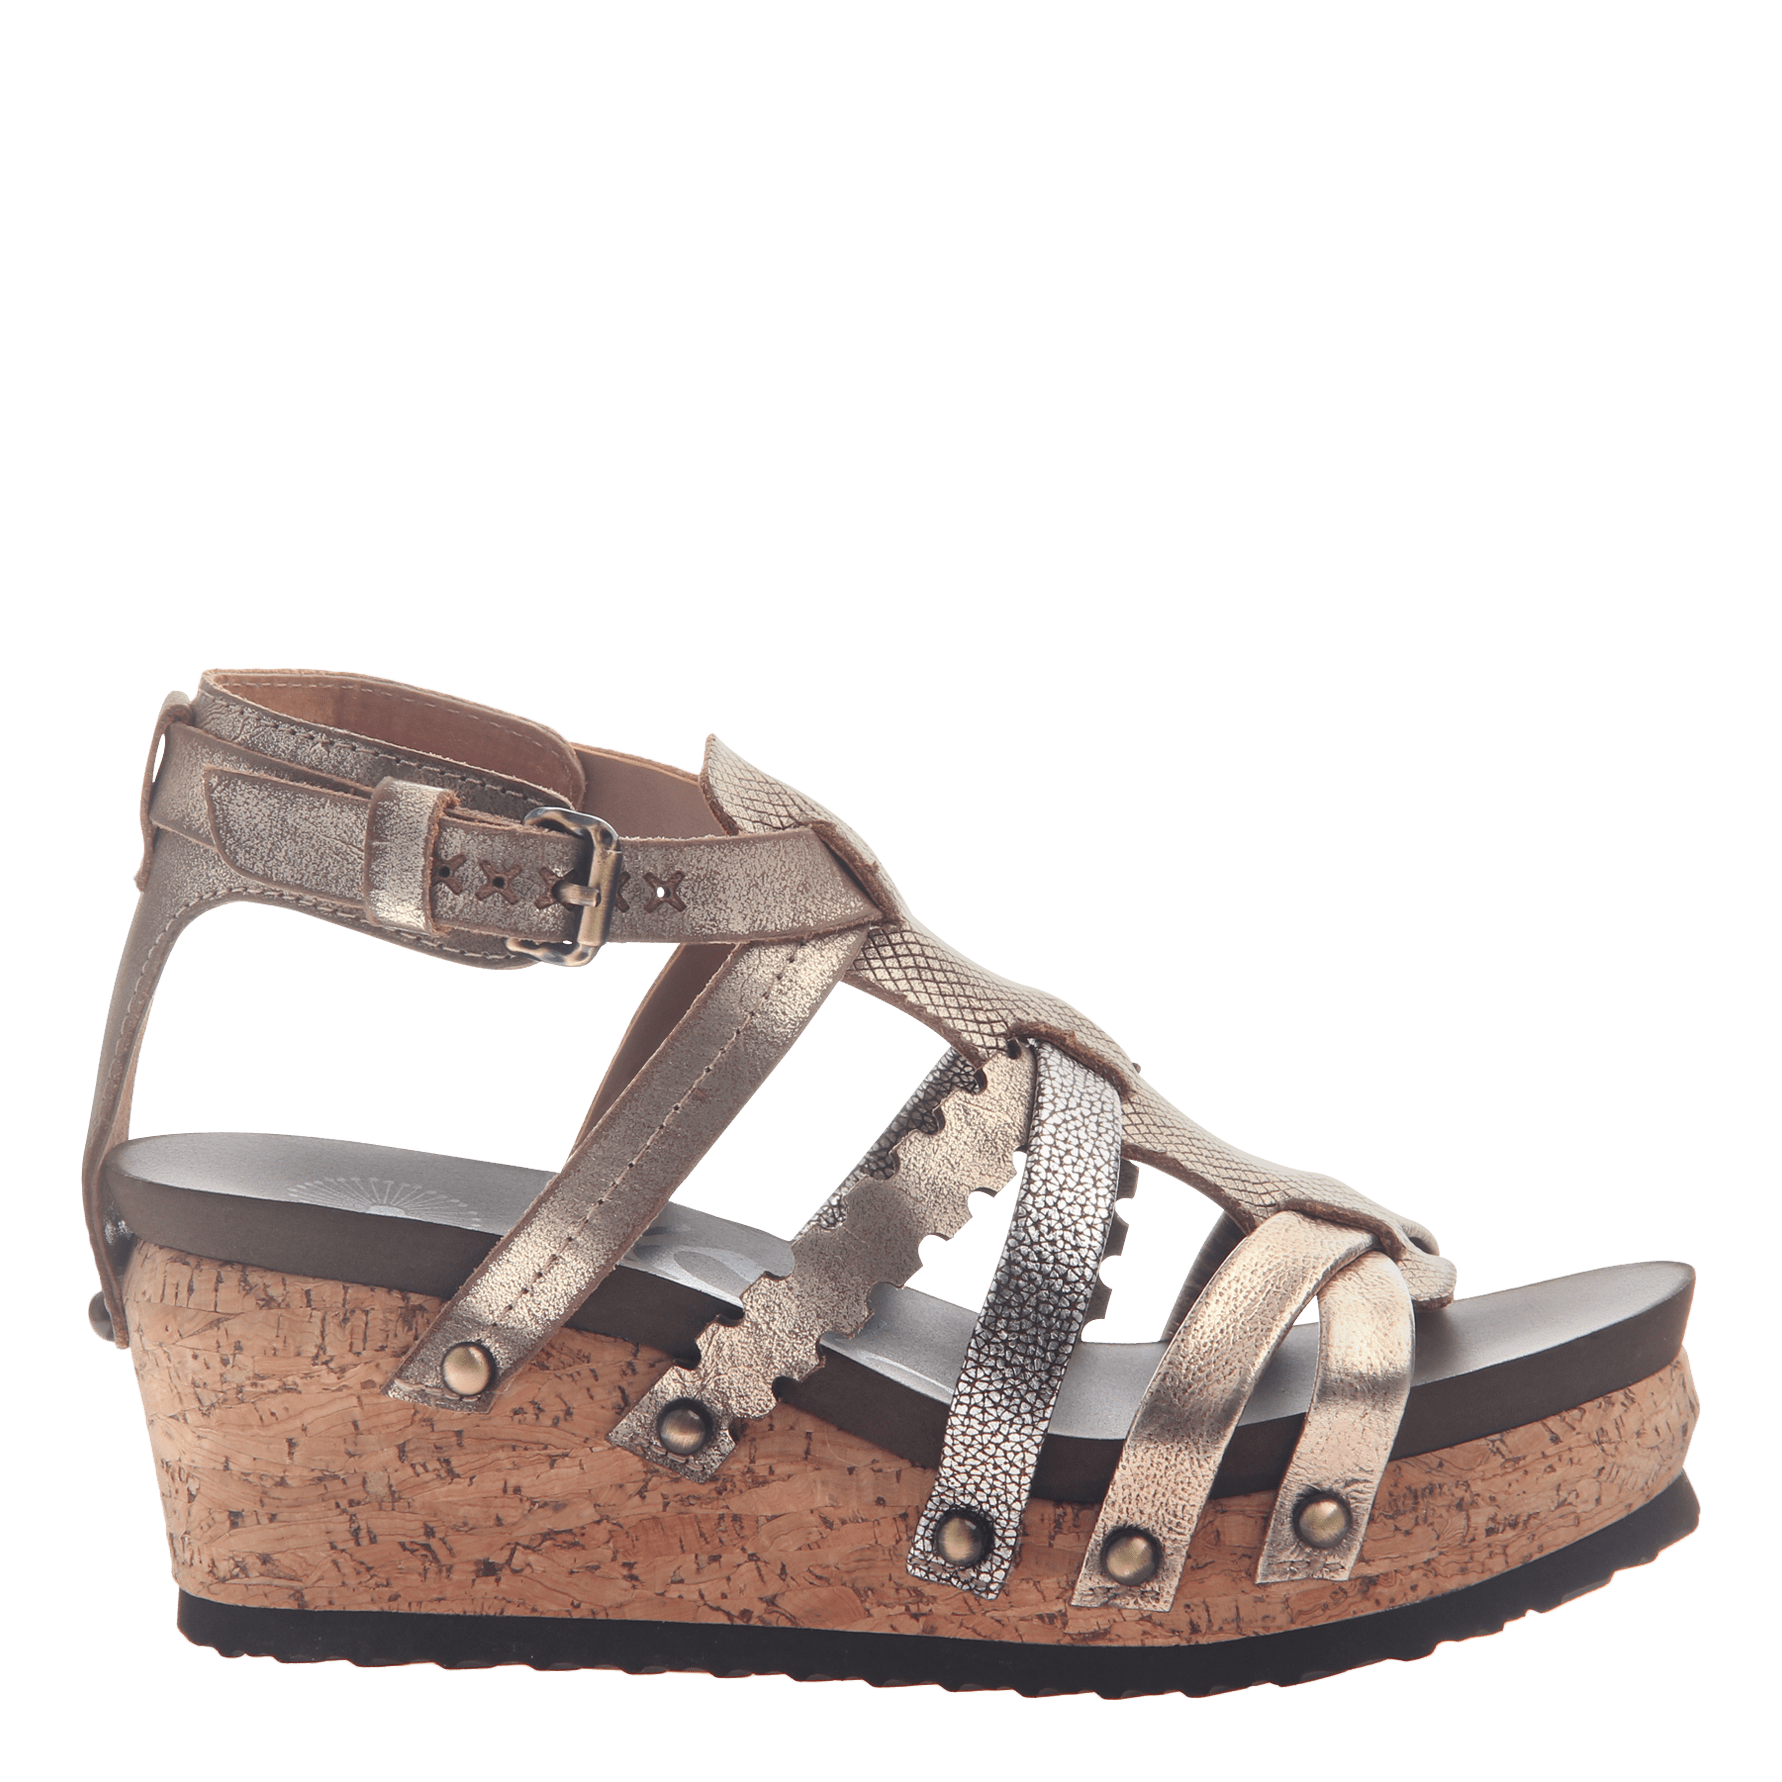 77ec923e0a01 Womens wedge gladiator sandal storm in Gold side view